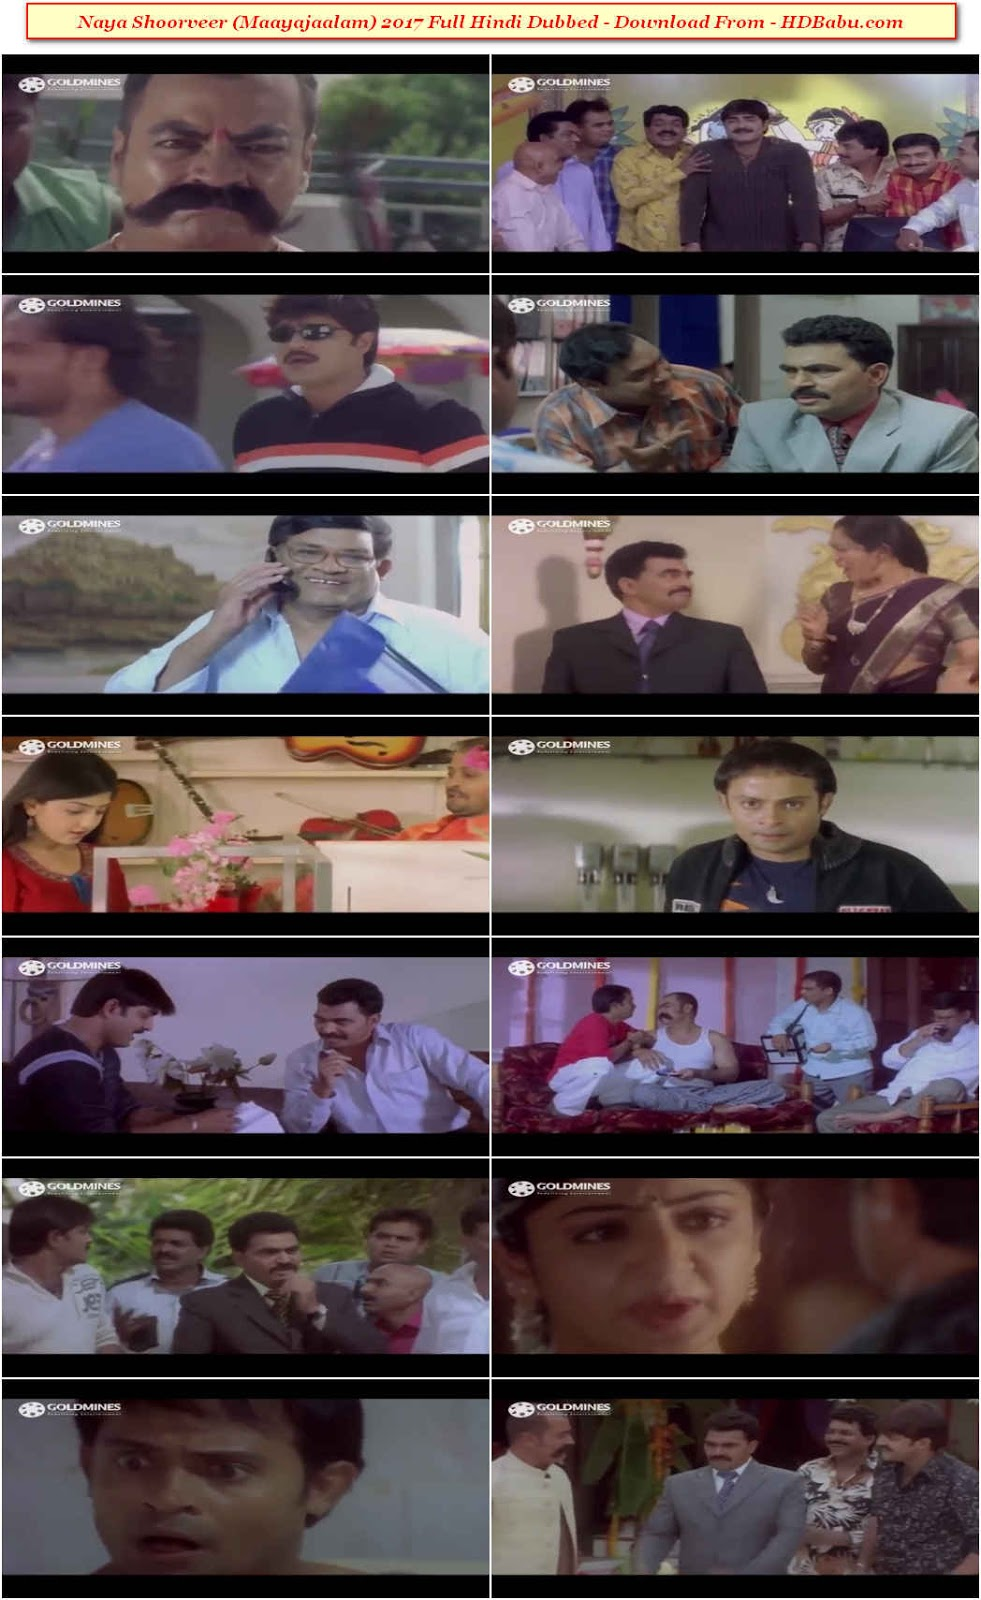 Naya Shoorveer Hindi Dubbed Full Movie Download